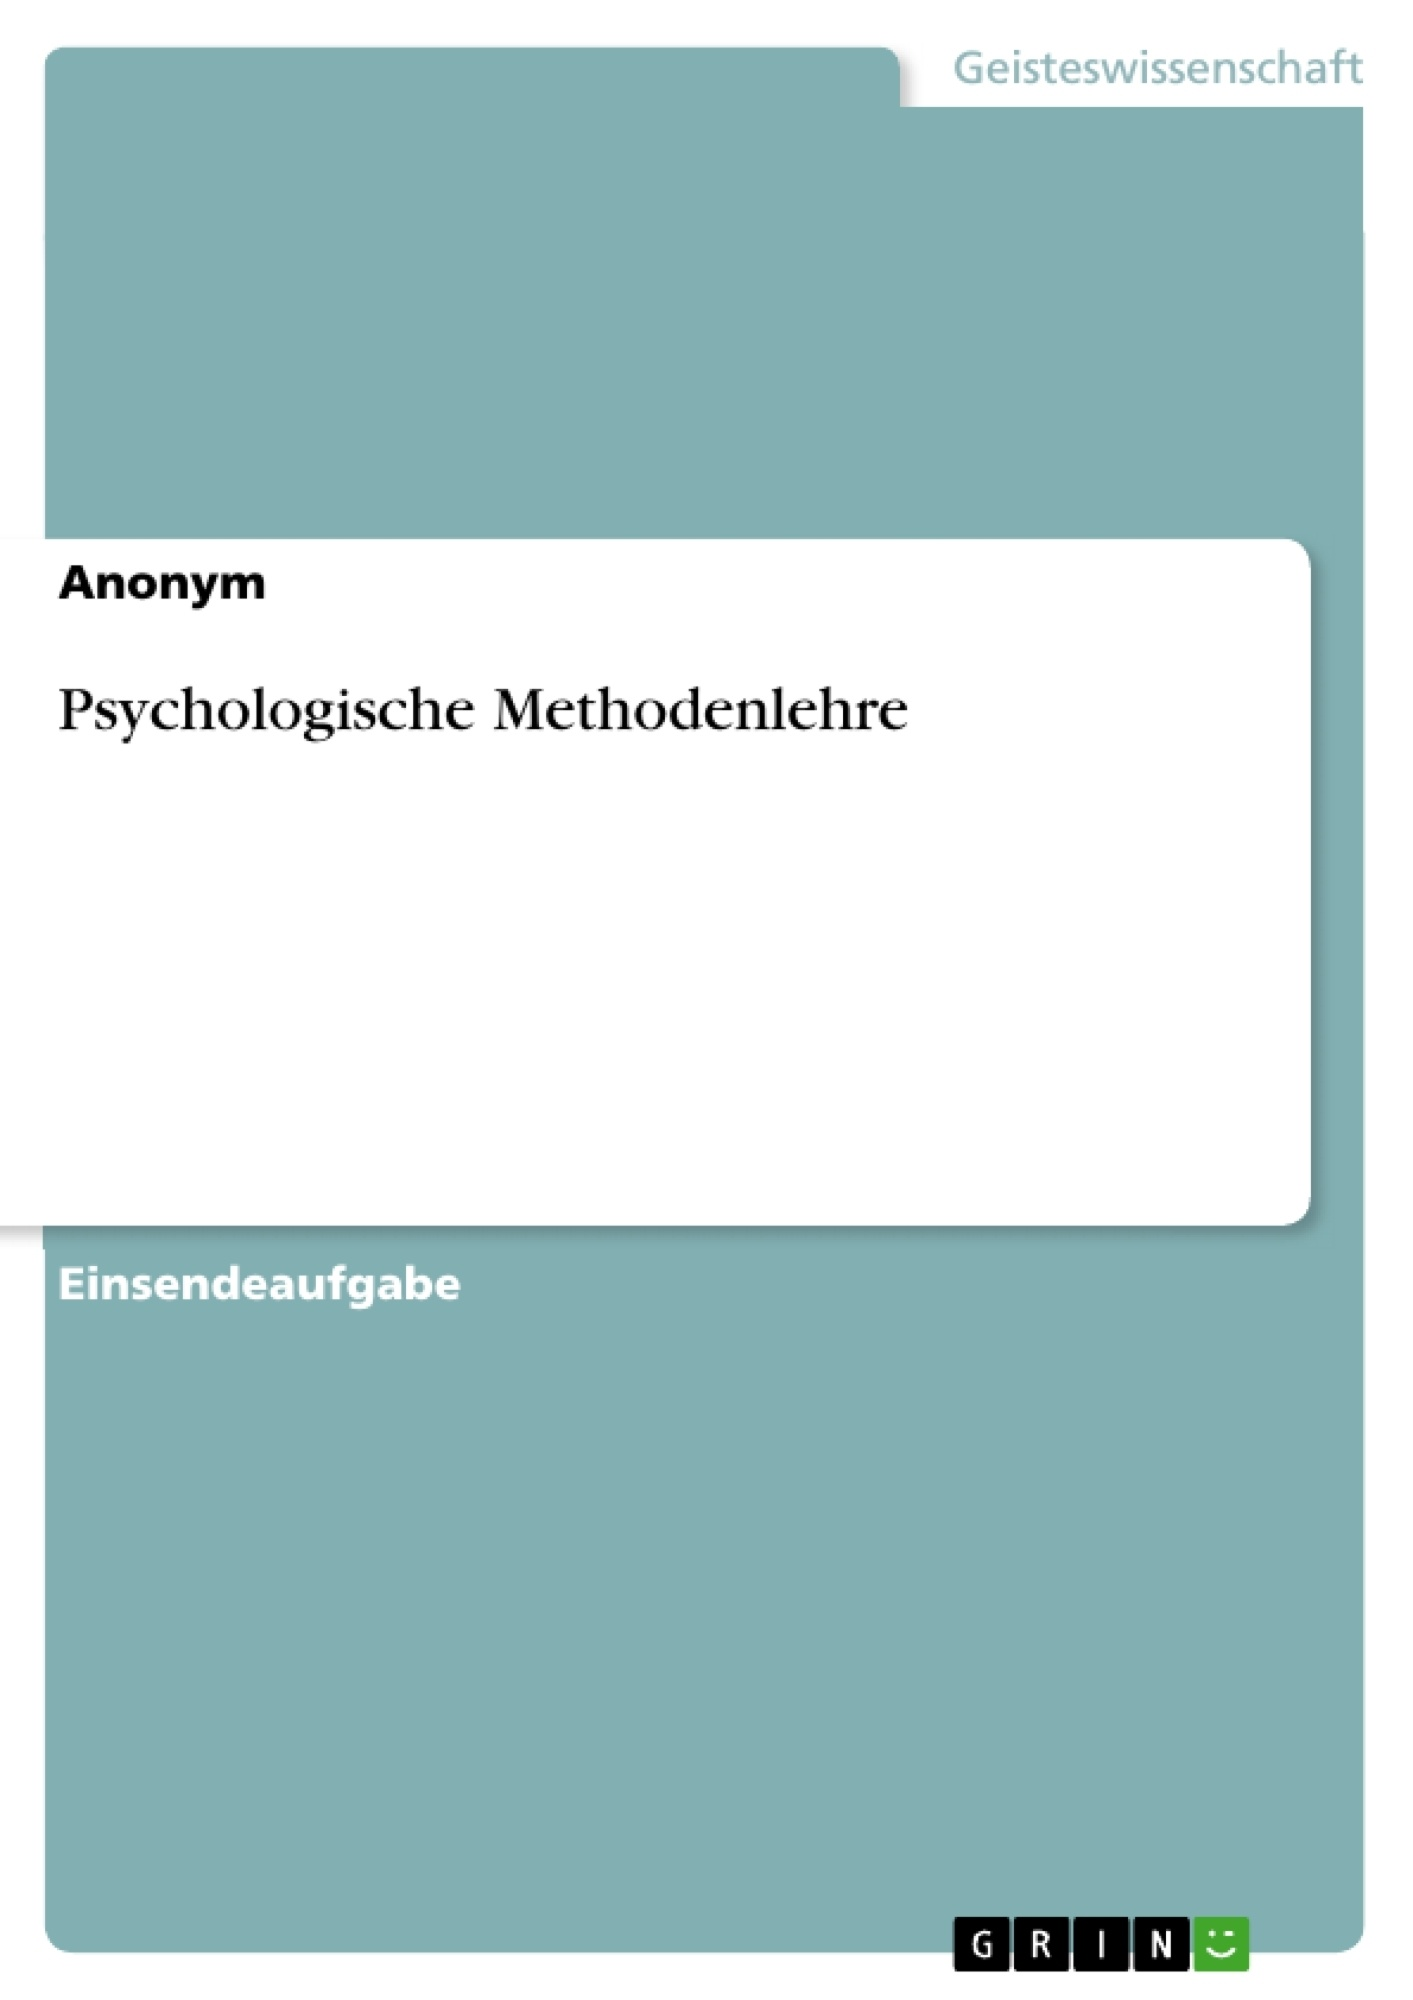 Titel: Psychologische Methodenlehre